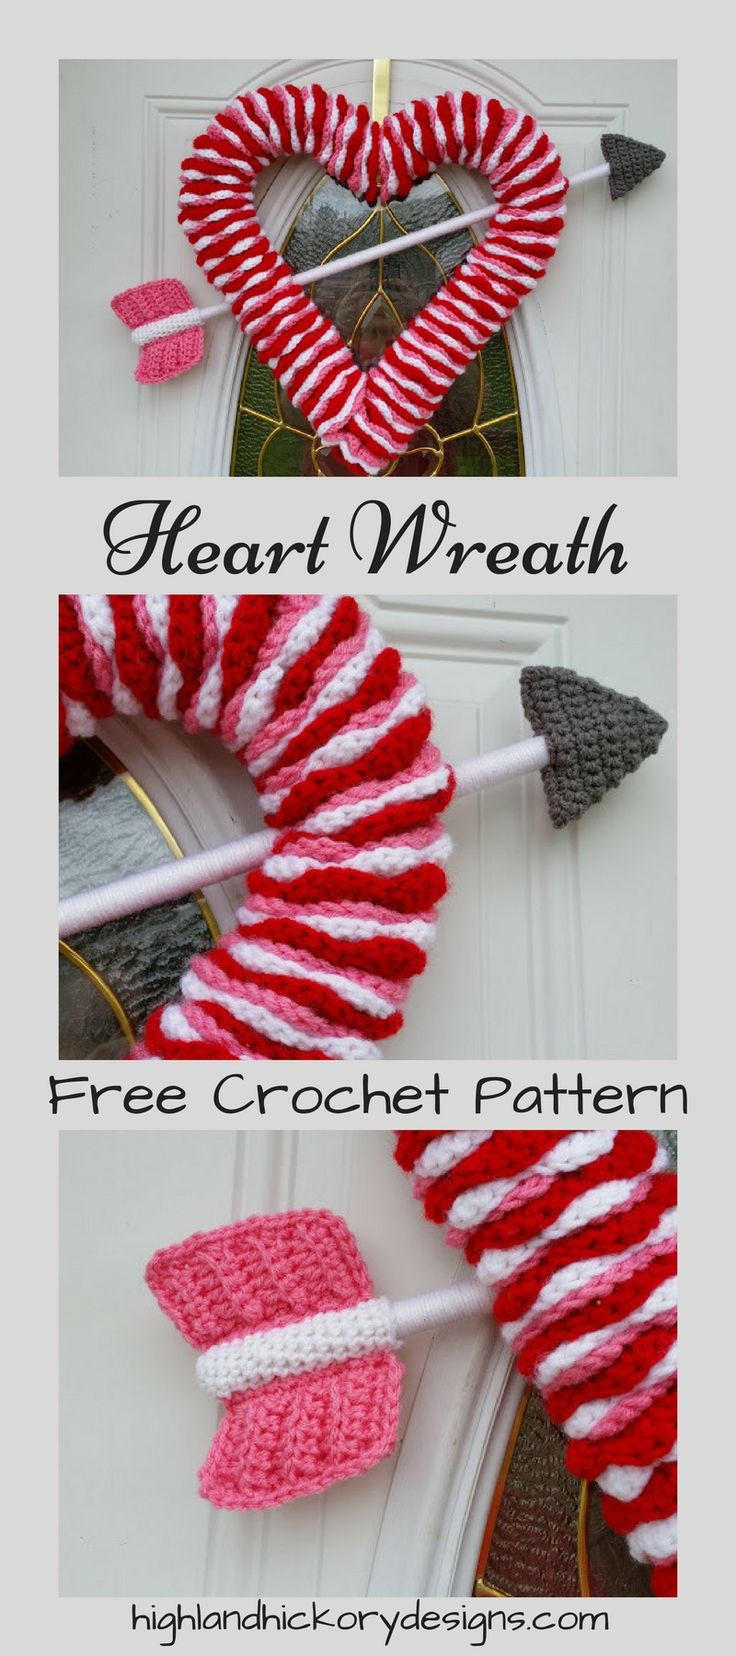 Crochet Heart Wreath.  Free Pattern.  Hearts don't have to be only for Valentine's Day. There are plenty of opportunities throughout the year to show a little love.  Pattern uses all basic stitches.